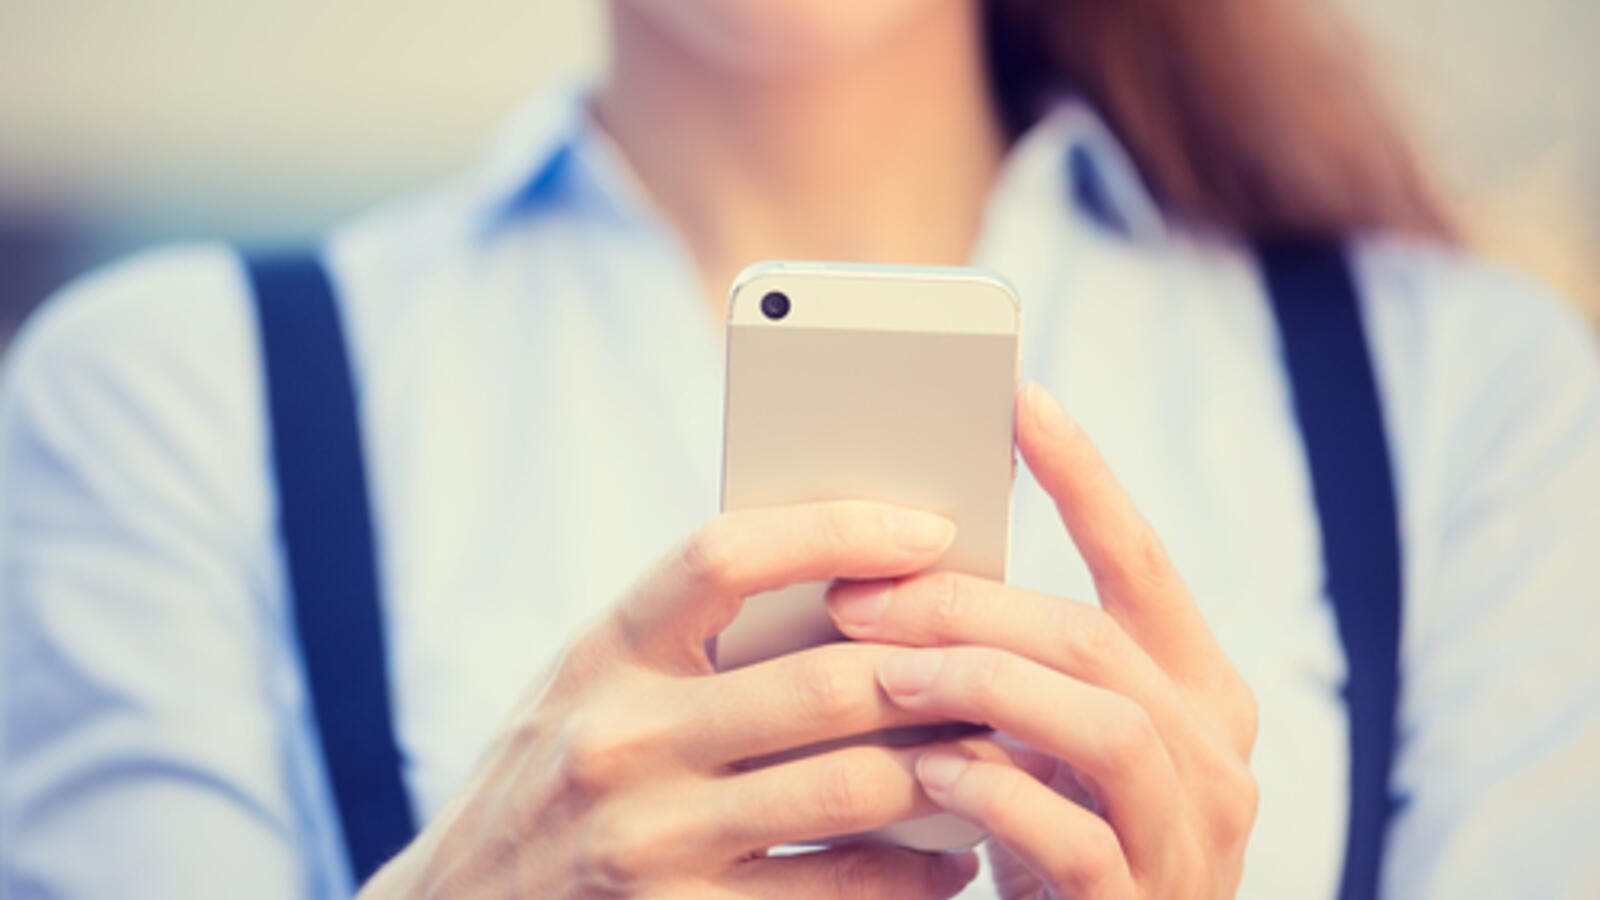 Mobile data traffic in the Middle East and Africa will be 14 times larger in 2020 than six years ago, Ericsson Mobility Report said Sunday. (Shutterstock)